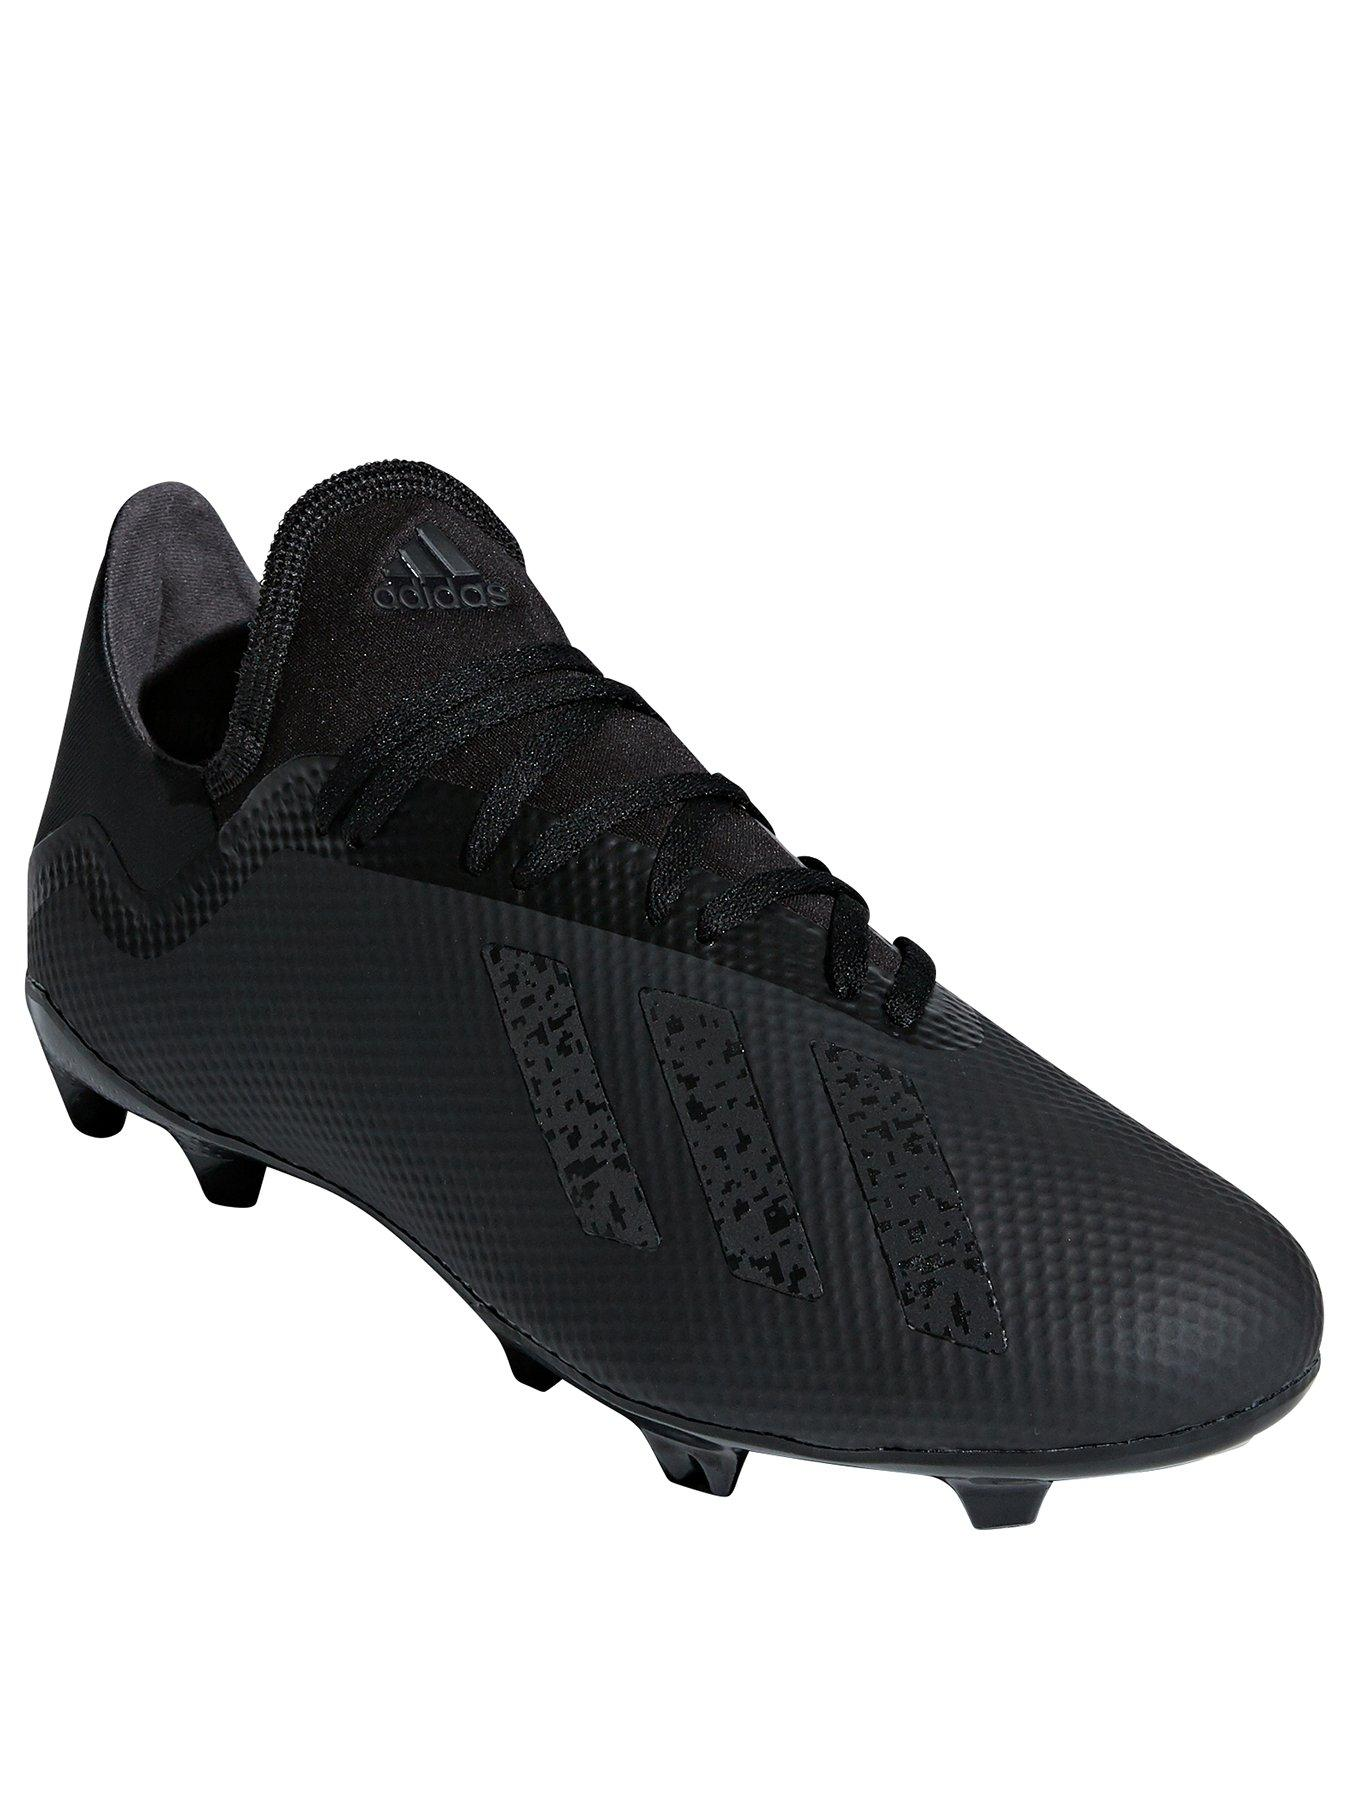 mens adidas football trainers